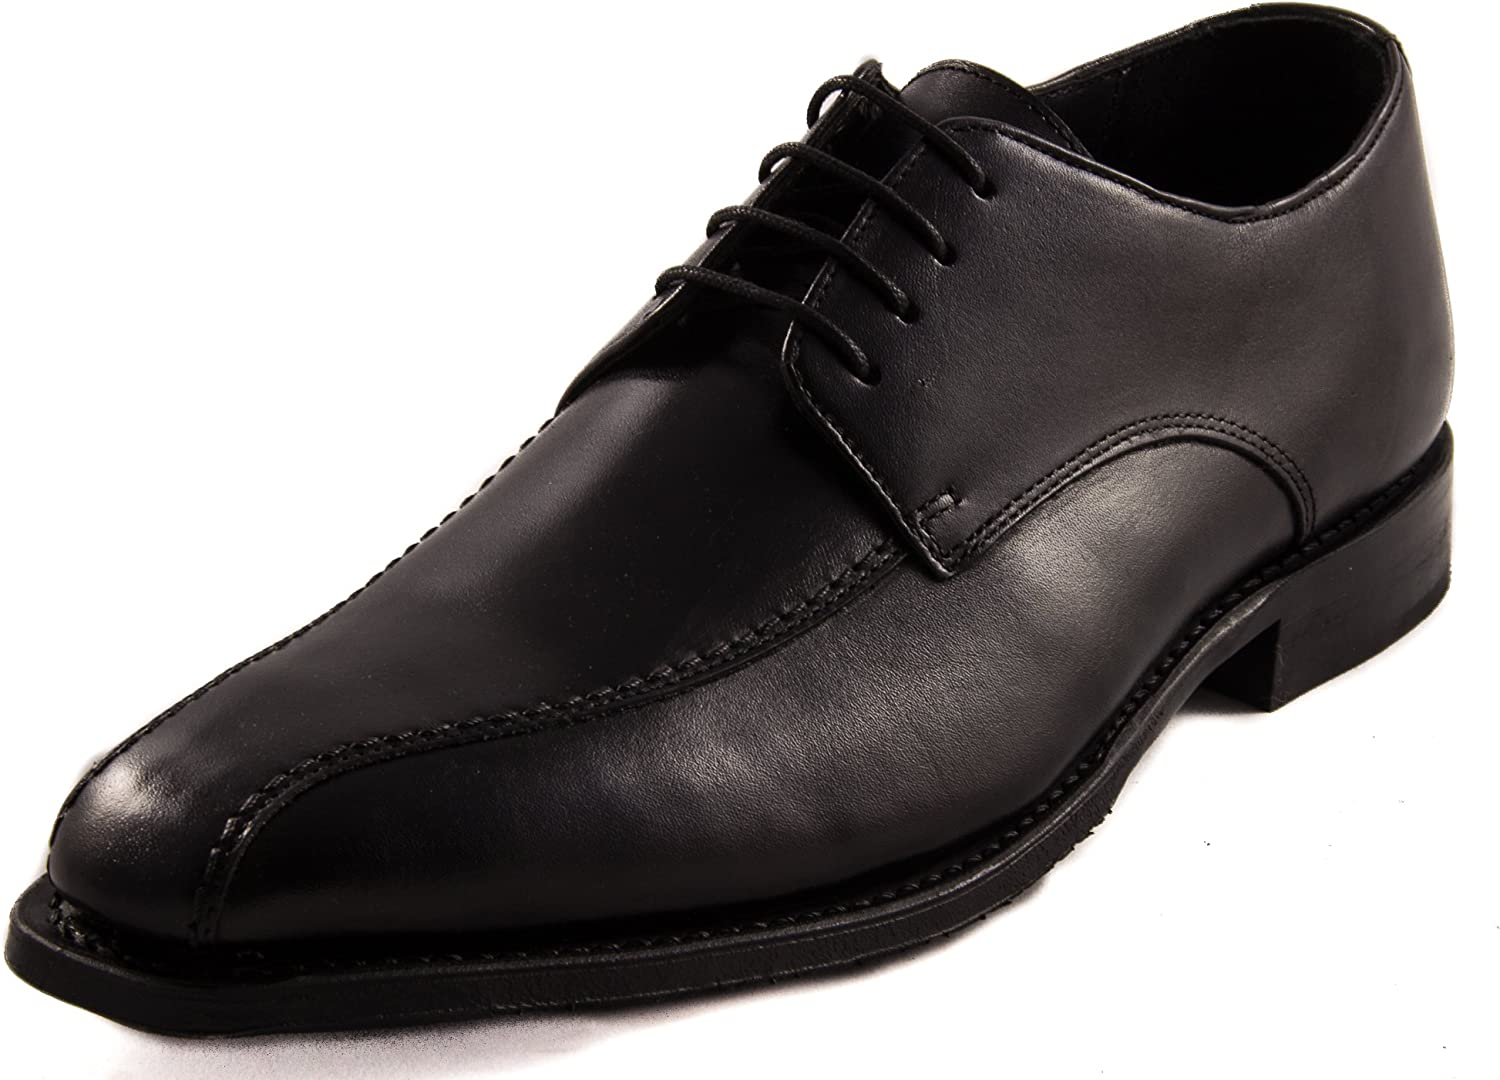 Gordon and Bros Lorenzo 201S, men's business shoes, lace-up derby shoes in blake-rapid style